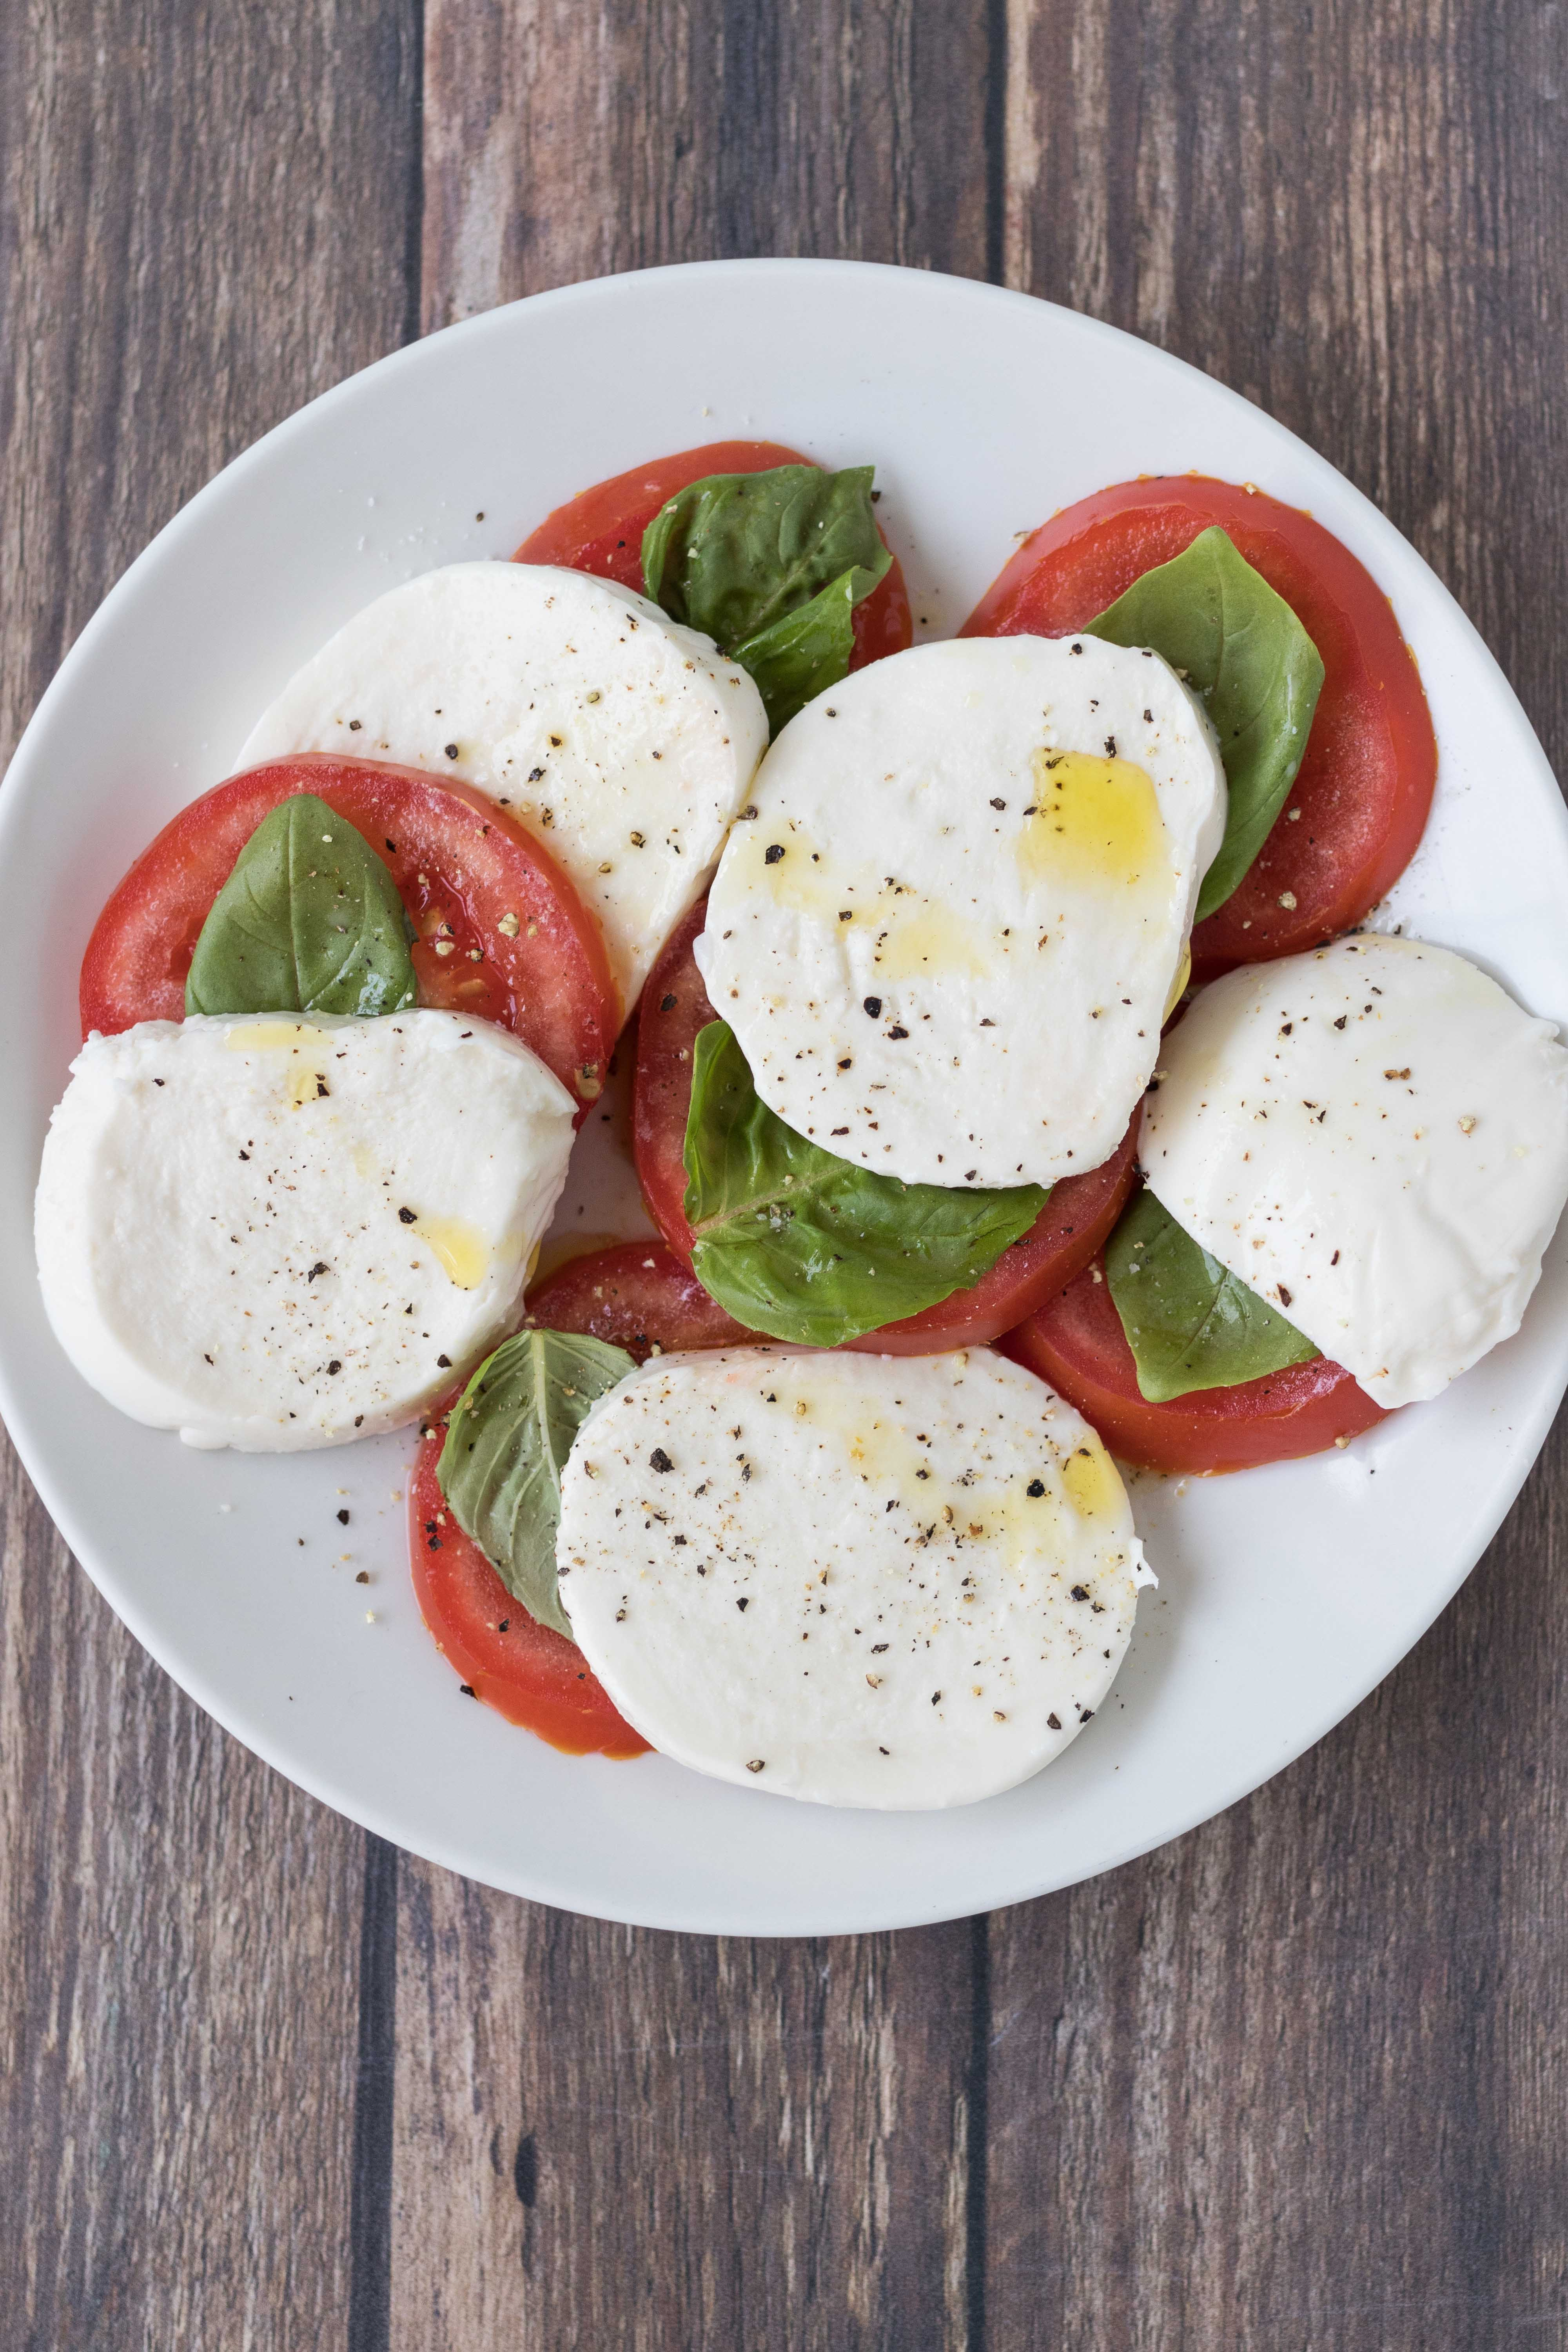 Caprese salad. Easy, healthy summer lunch or dinner! #caprese #capresesalad #capreserecipes | https://www.roseclearfield.com